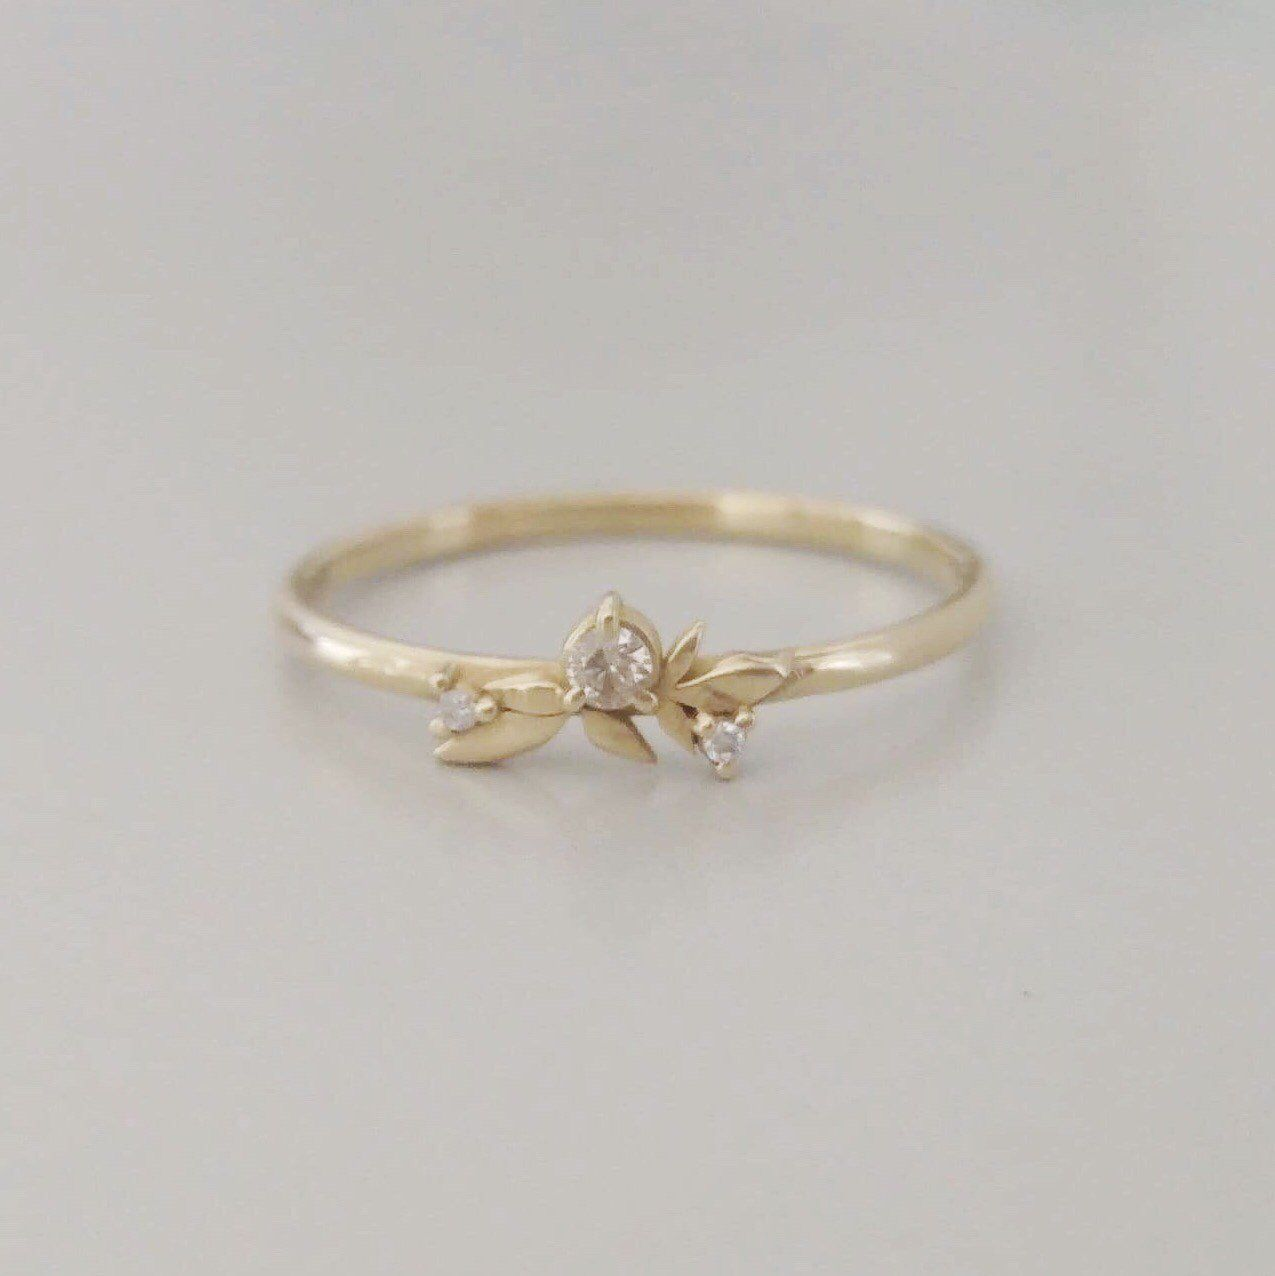 Gold Leaf Wedding Ring Dainty Diamond Ring Thin Gold Etsy Leaf Wedding Rings Dainty Diamond Ring Unique Engagement Rings